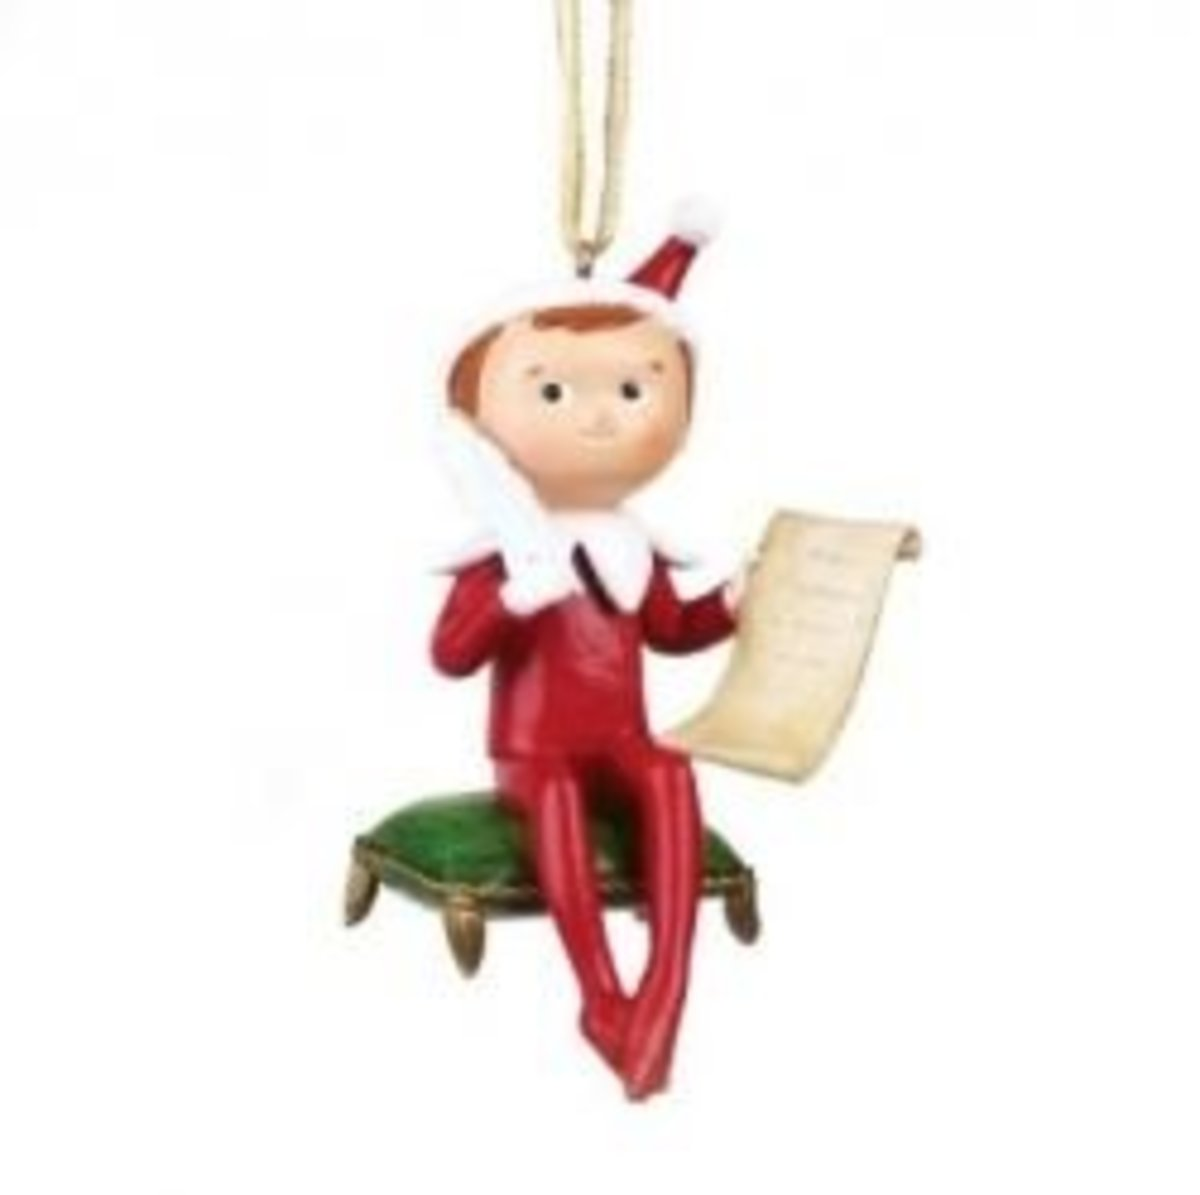 Decorate your Christmas tree with an Elf on the Shelf ornament.